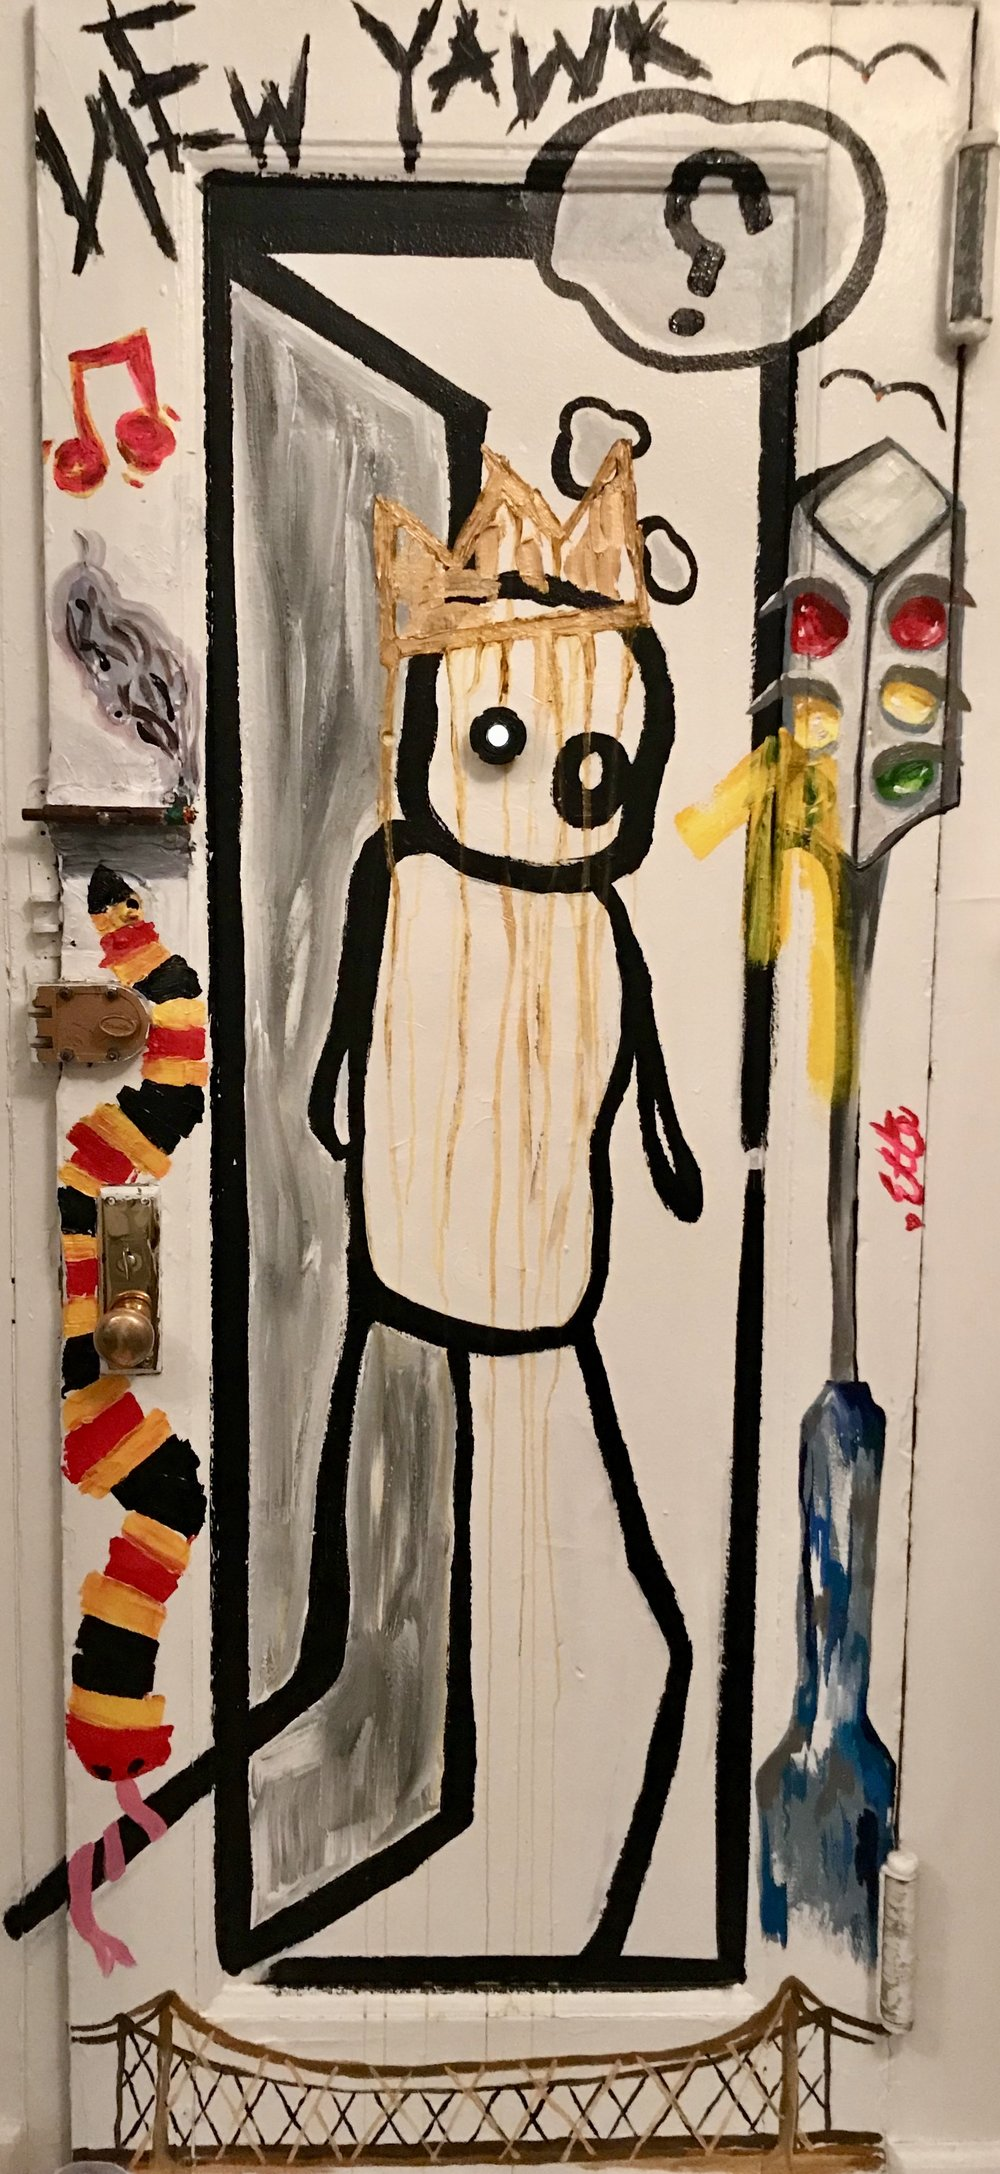 """Ode To Stik"" back of an apartment door"